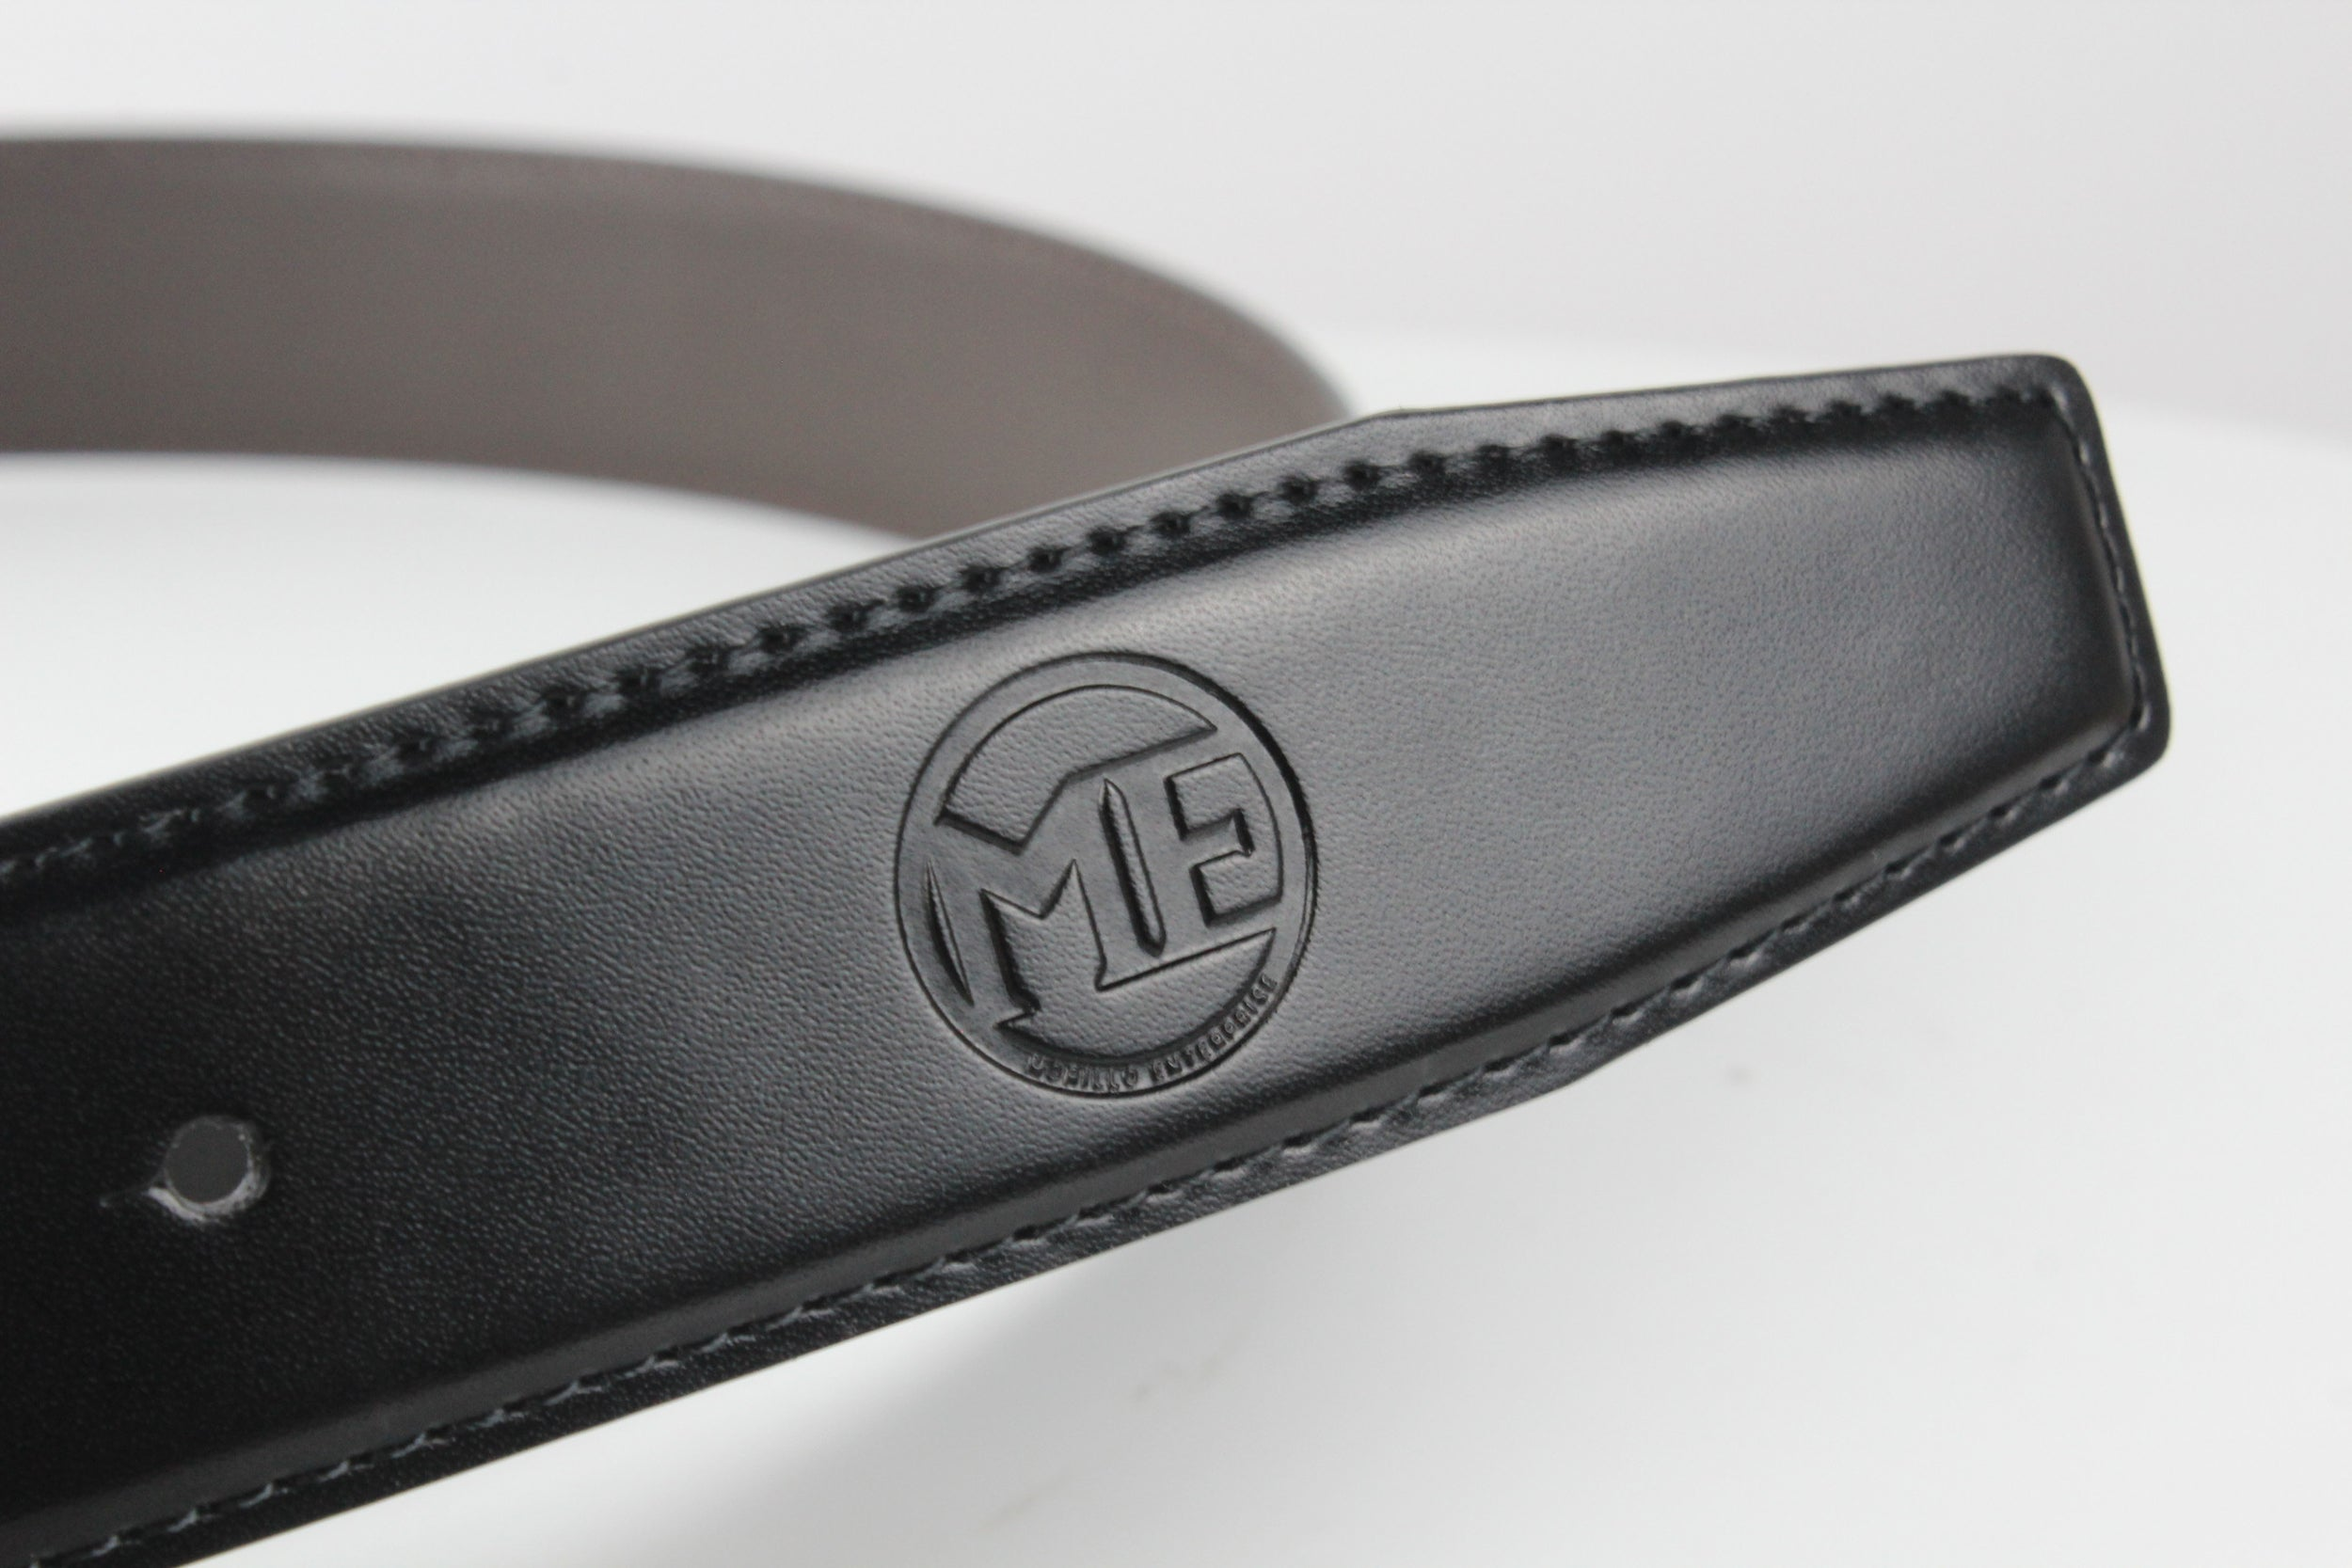 ME CARBON FIBER BUCKLE, LEATHER BELT Accessories - MORILLO ENTERPRISE